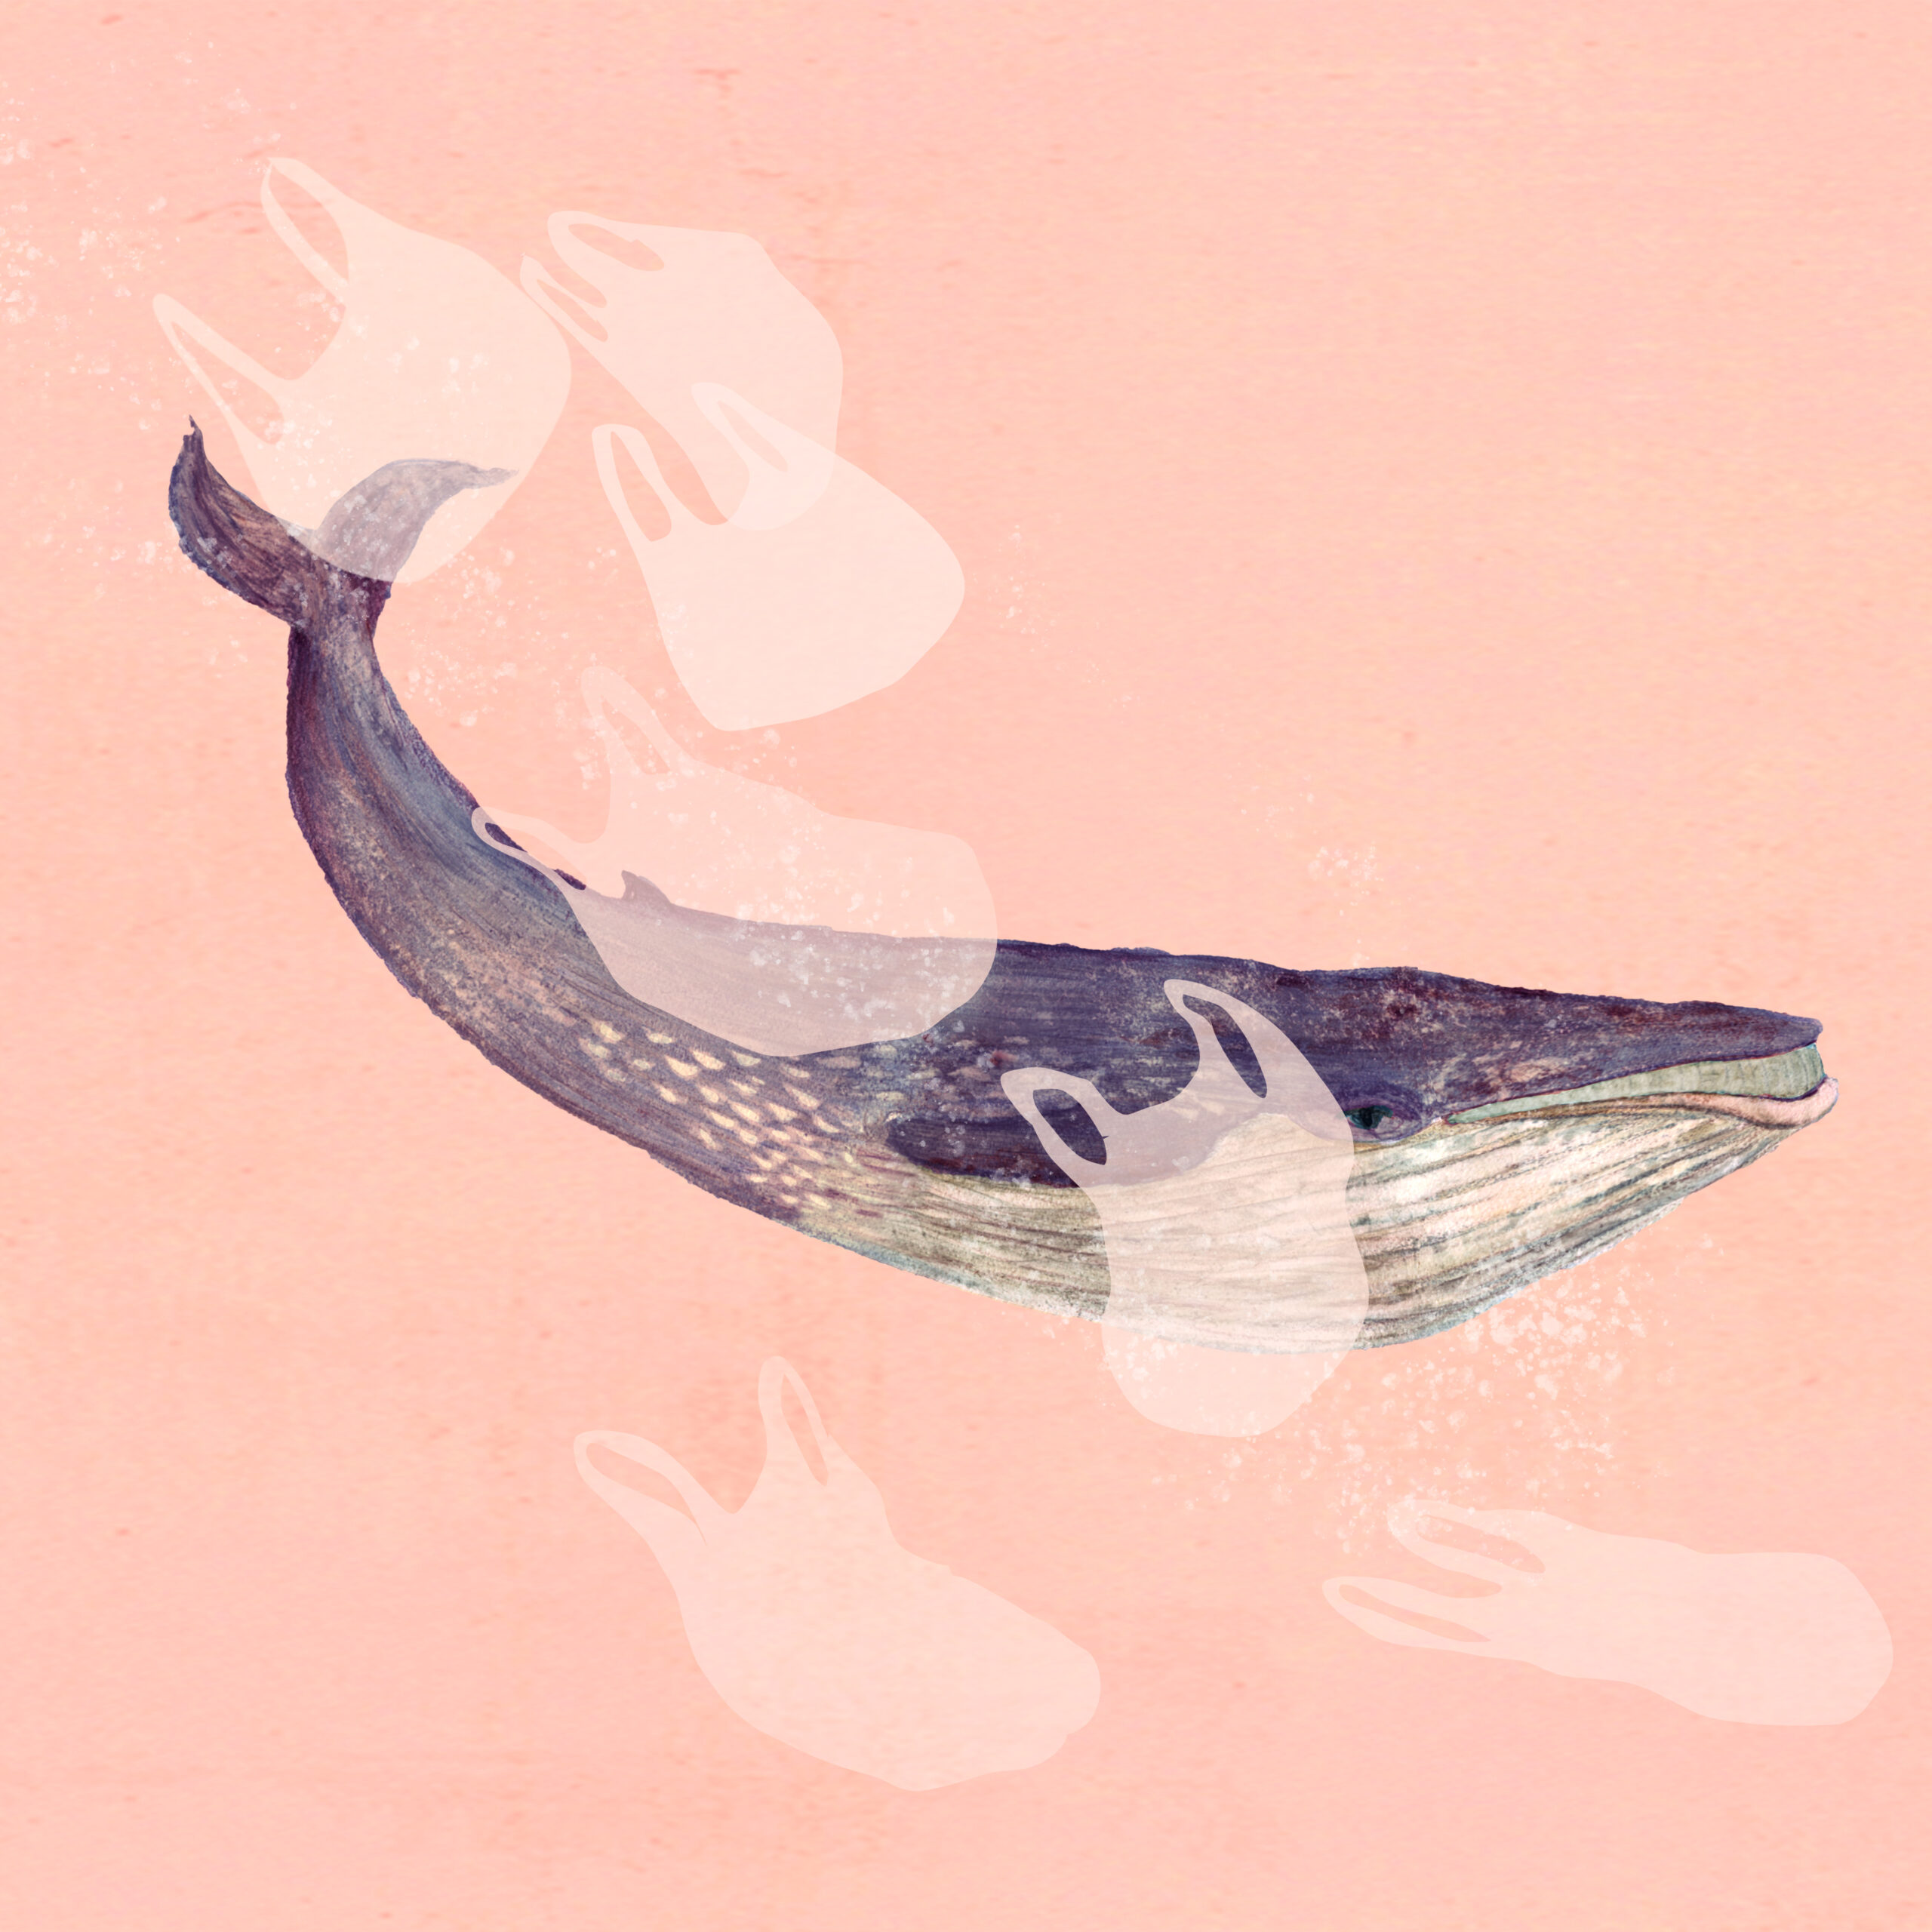 A dark blue whale on a pink background with seven translucent plastic carrier bags in the foreground.